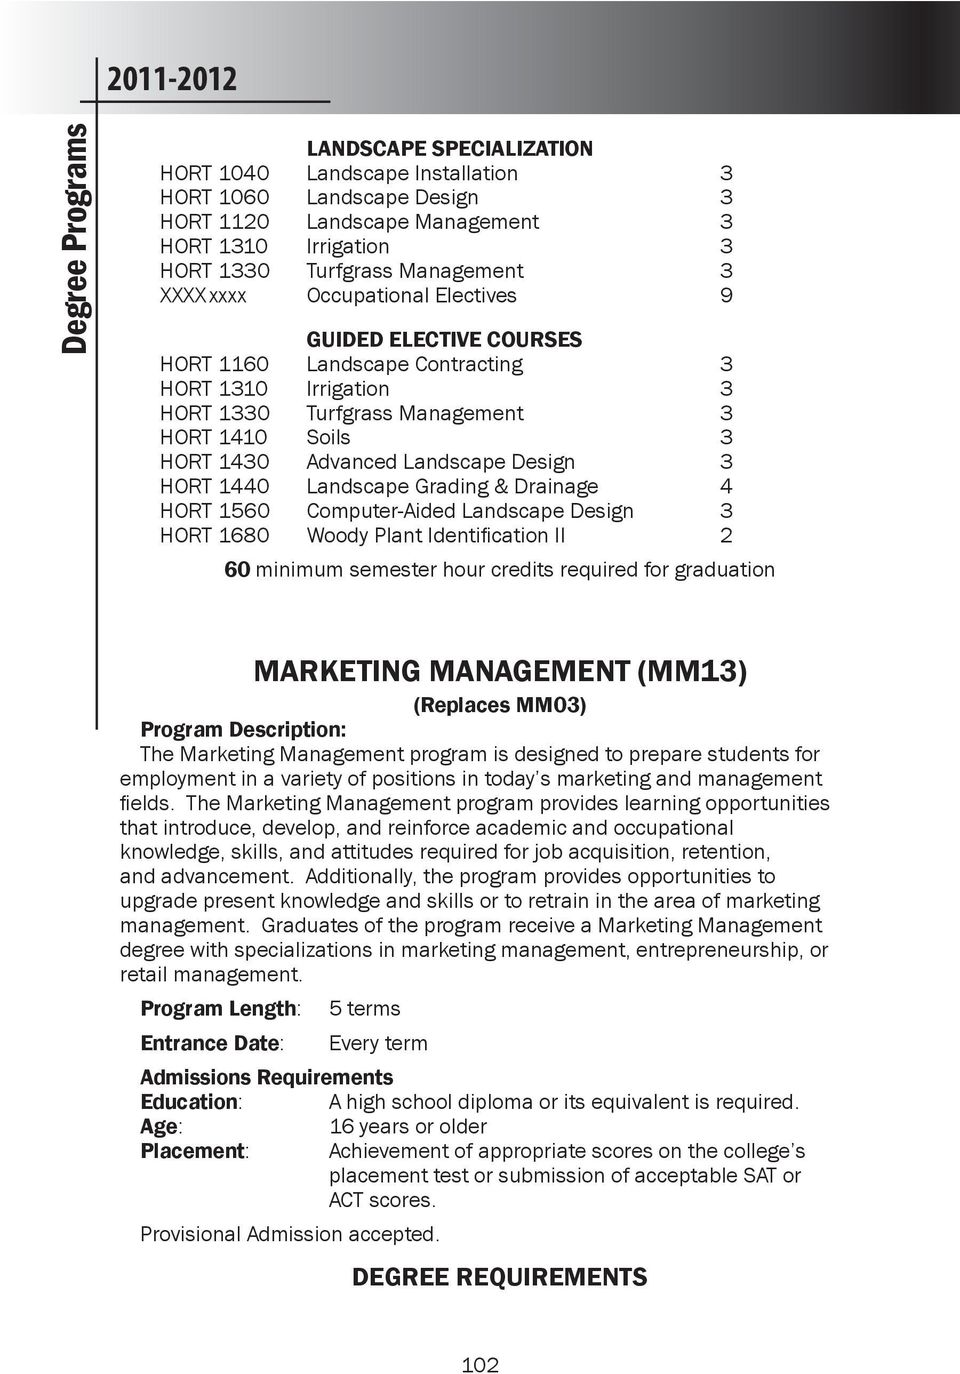 HORT 1440 Landscape Grading & Drainage 4 HORT 1560 Computer-Aided Landscape Design 3 HORT 1680 Woody Plant Identification II 2 60 minimum semester hour credits required for graduation MARKETING